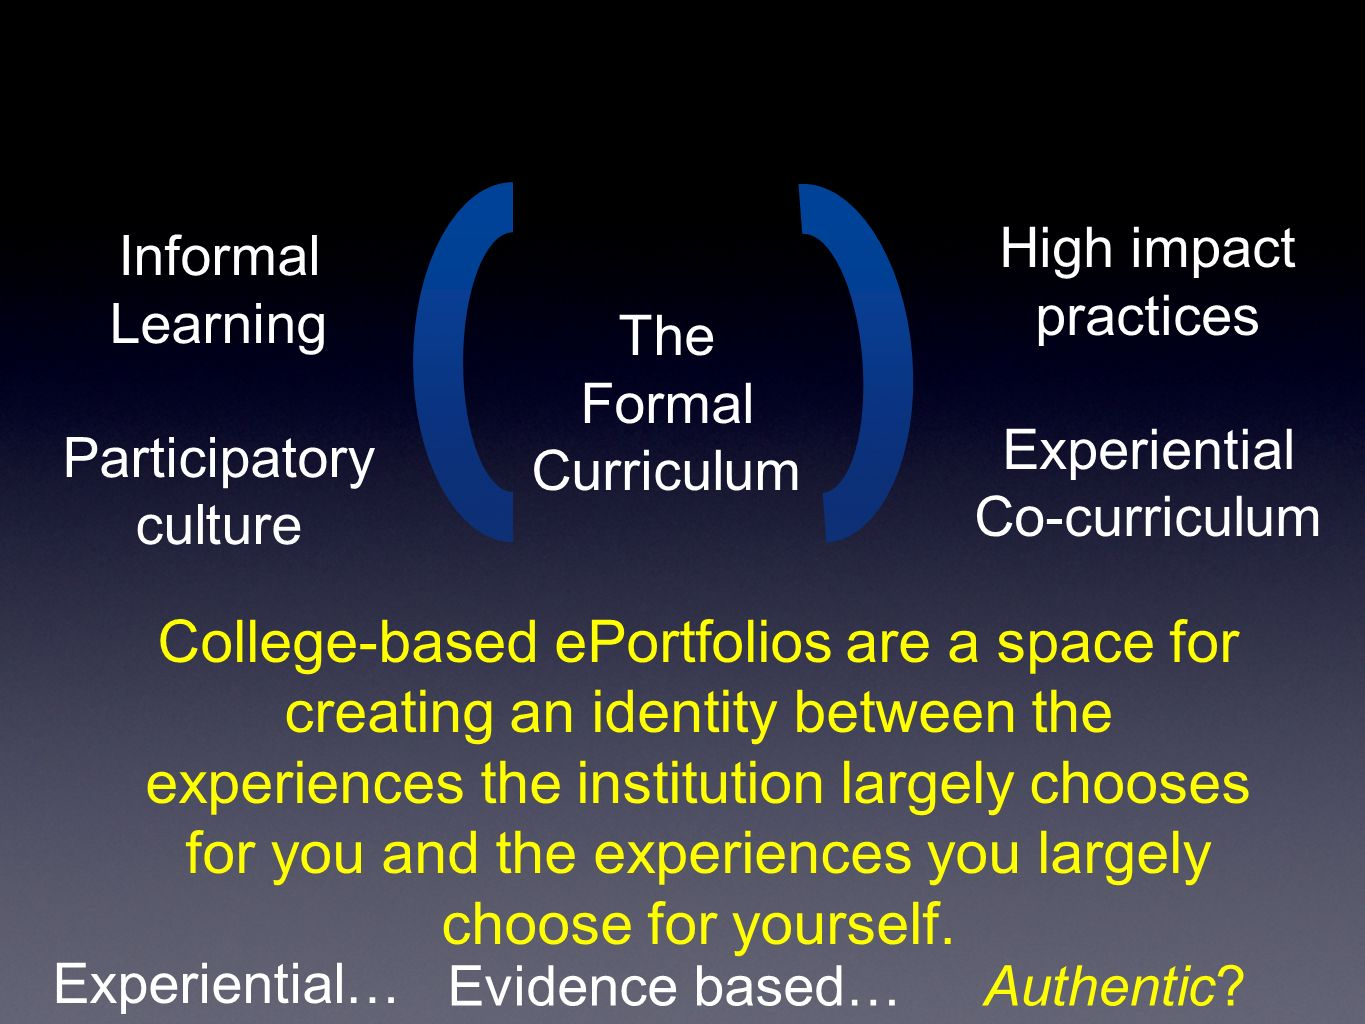 The Formal Curriculum Informal Learning Participatory culture High impact practices Experiential Co-curriculum College-based ePortfolios are a space for creating an identity between the experiences the institution largely chooses for you and the experiences you largely choose for yourself.